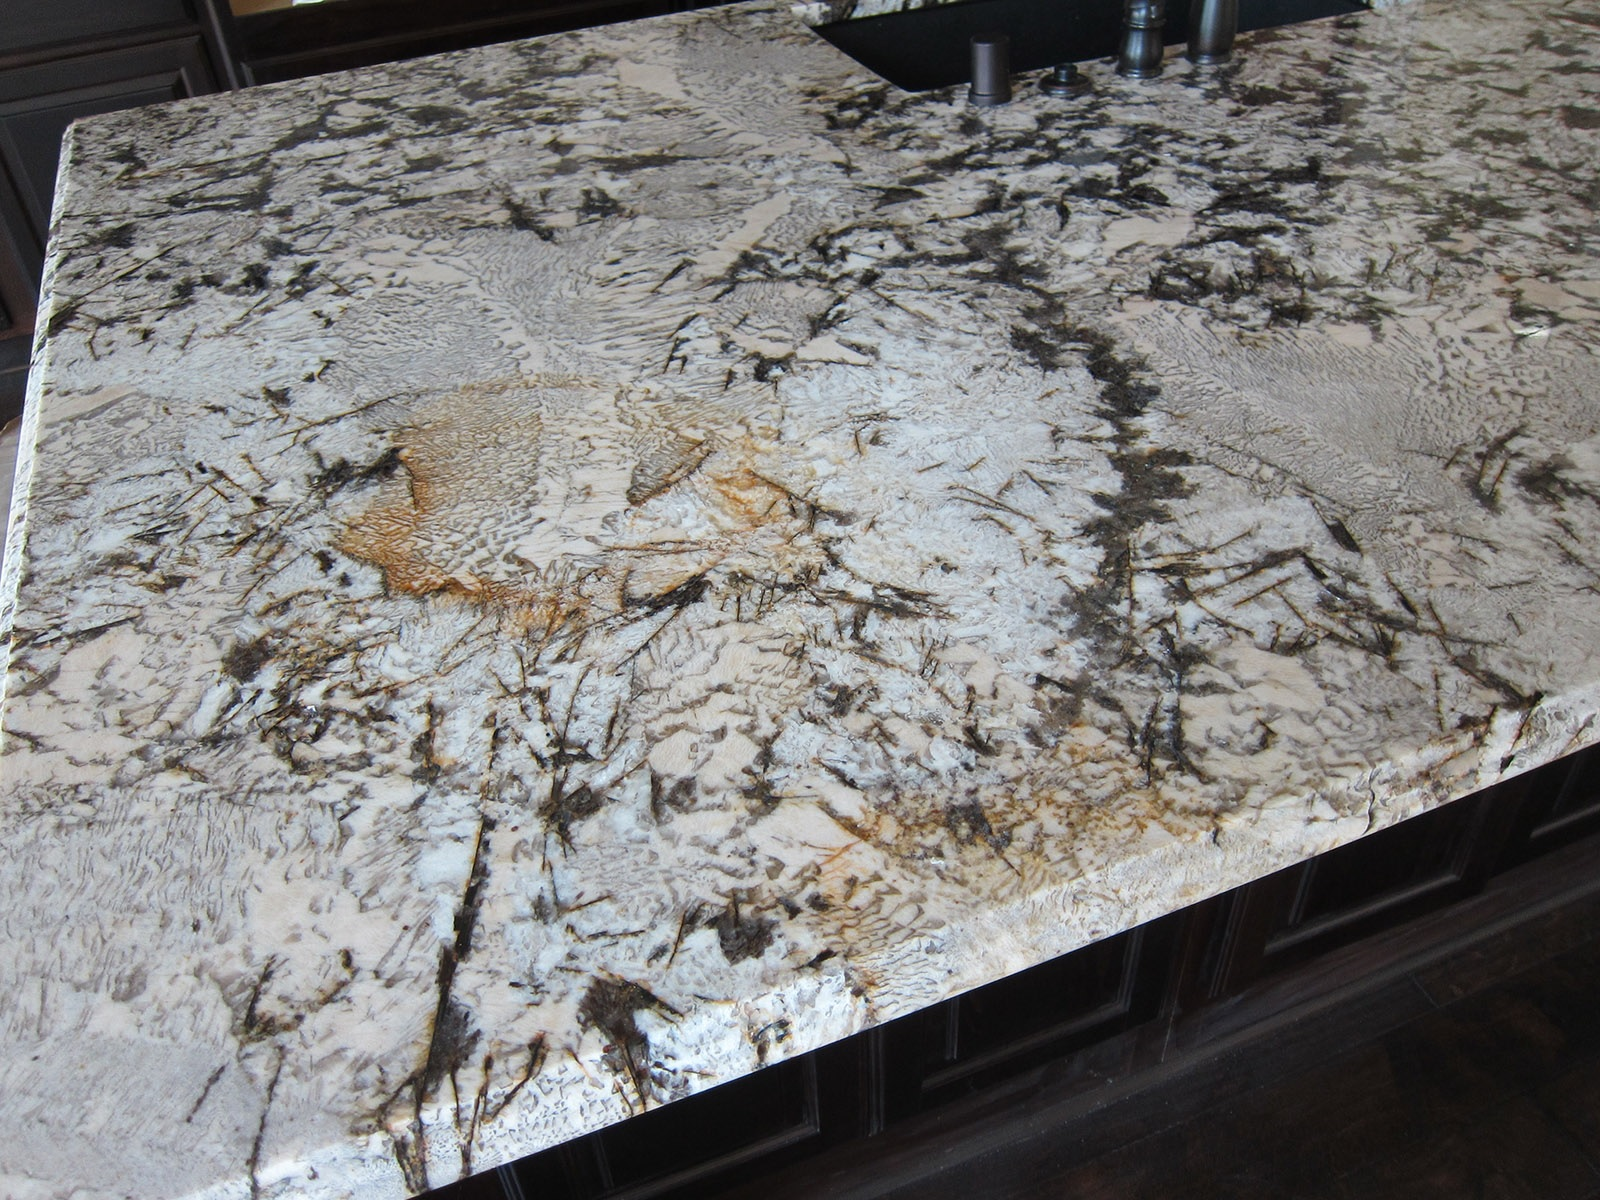 Indian granite vs Chinese granite: A candid comparison on quality